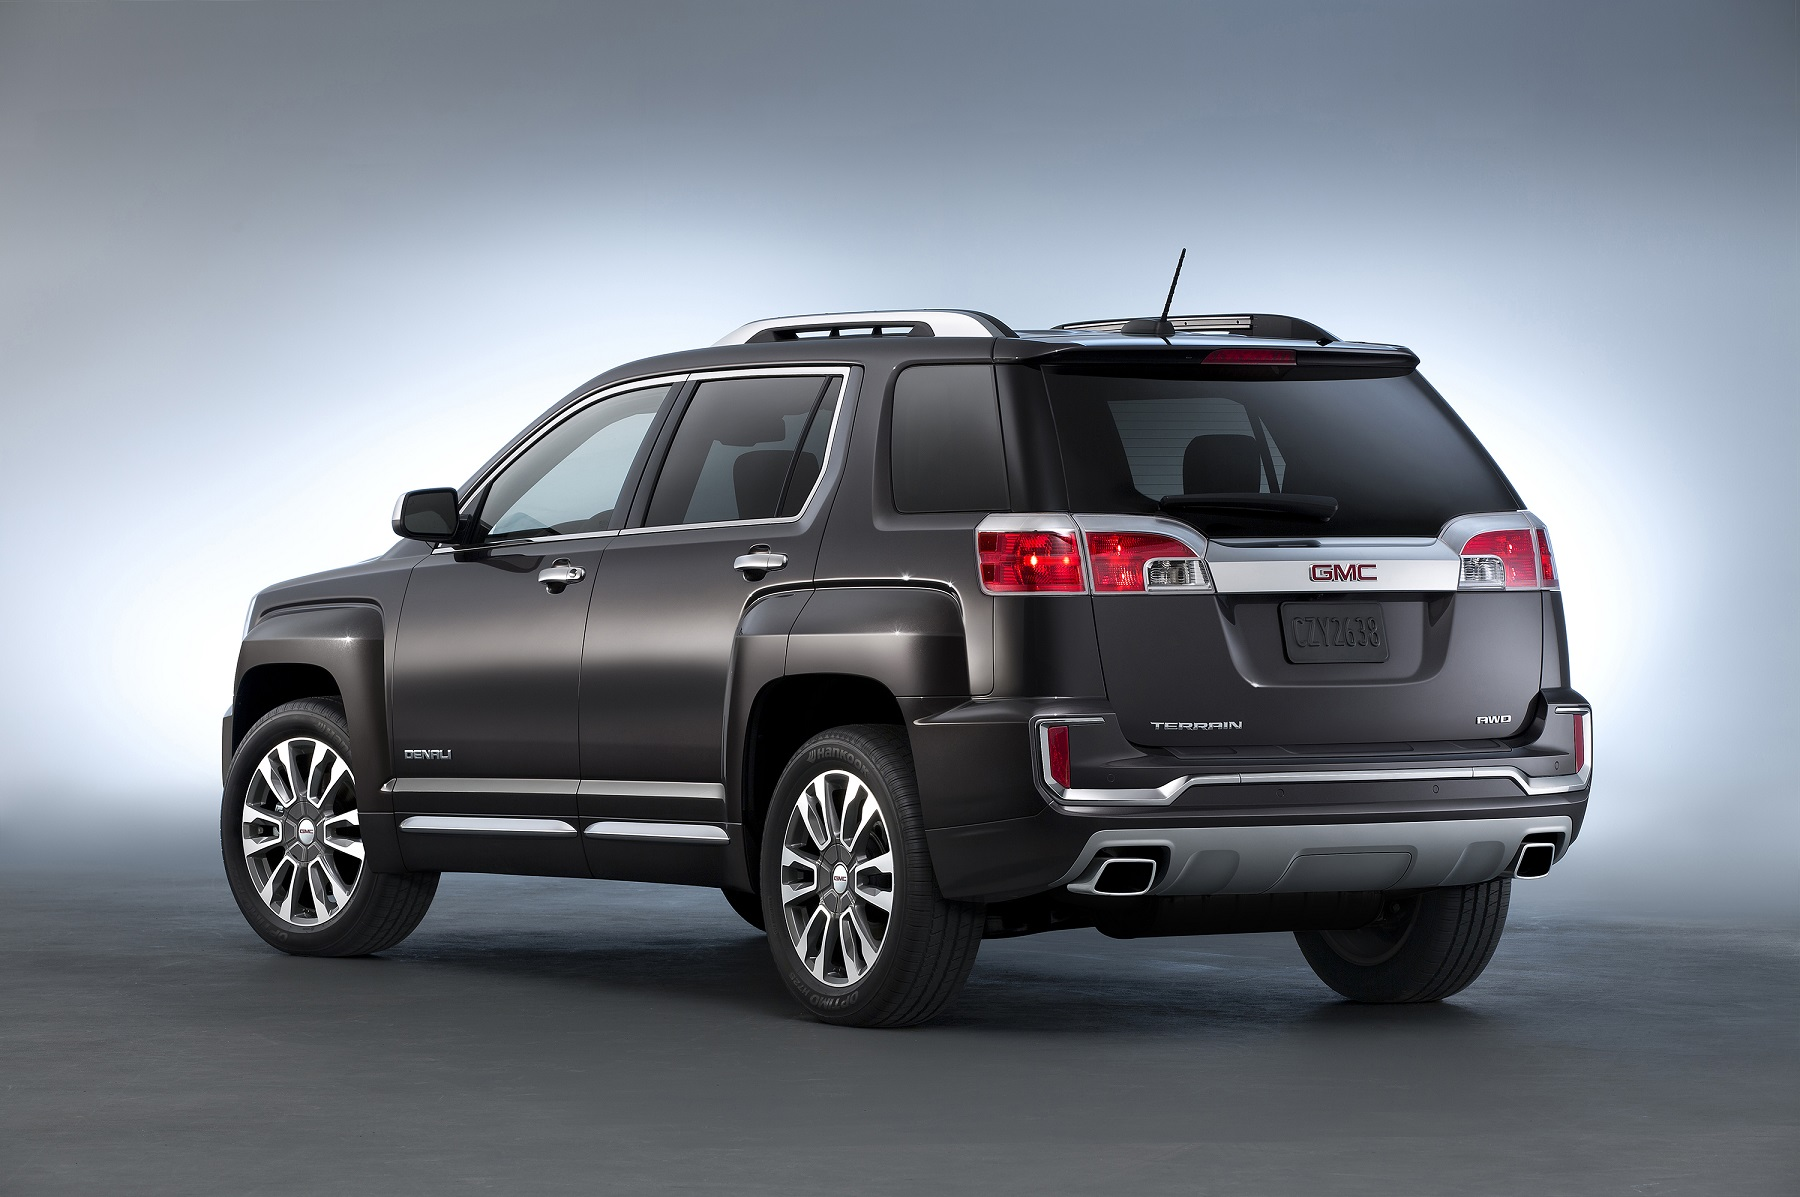 Manufacturer photo: The 2016 Terrain is offered in front-wheel-drive and all-wheel-drive models, in SL, SLE and SLT trim levels, as well as the Denali